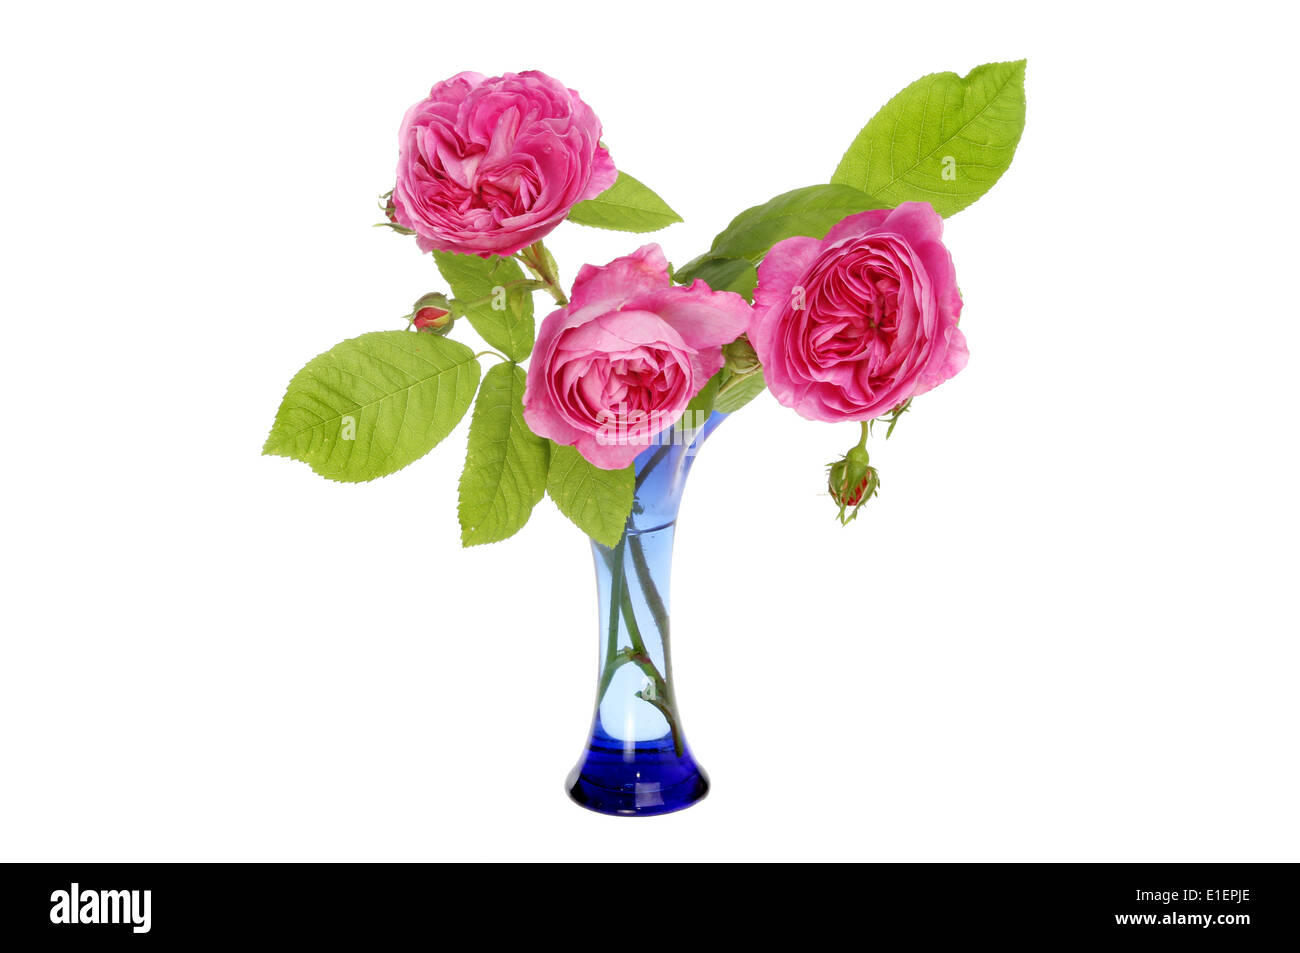 Arrangement of magenta roses in a blue glass vase isolated against white - Stock Image